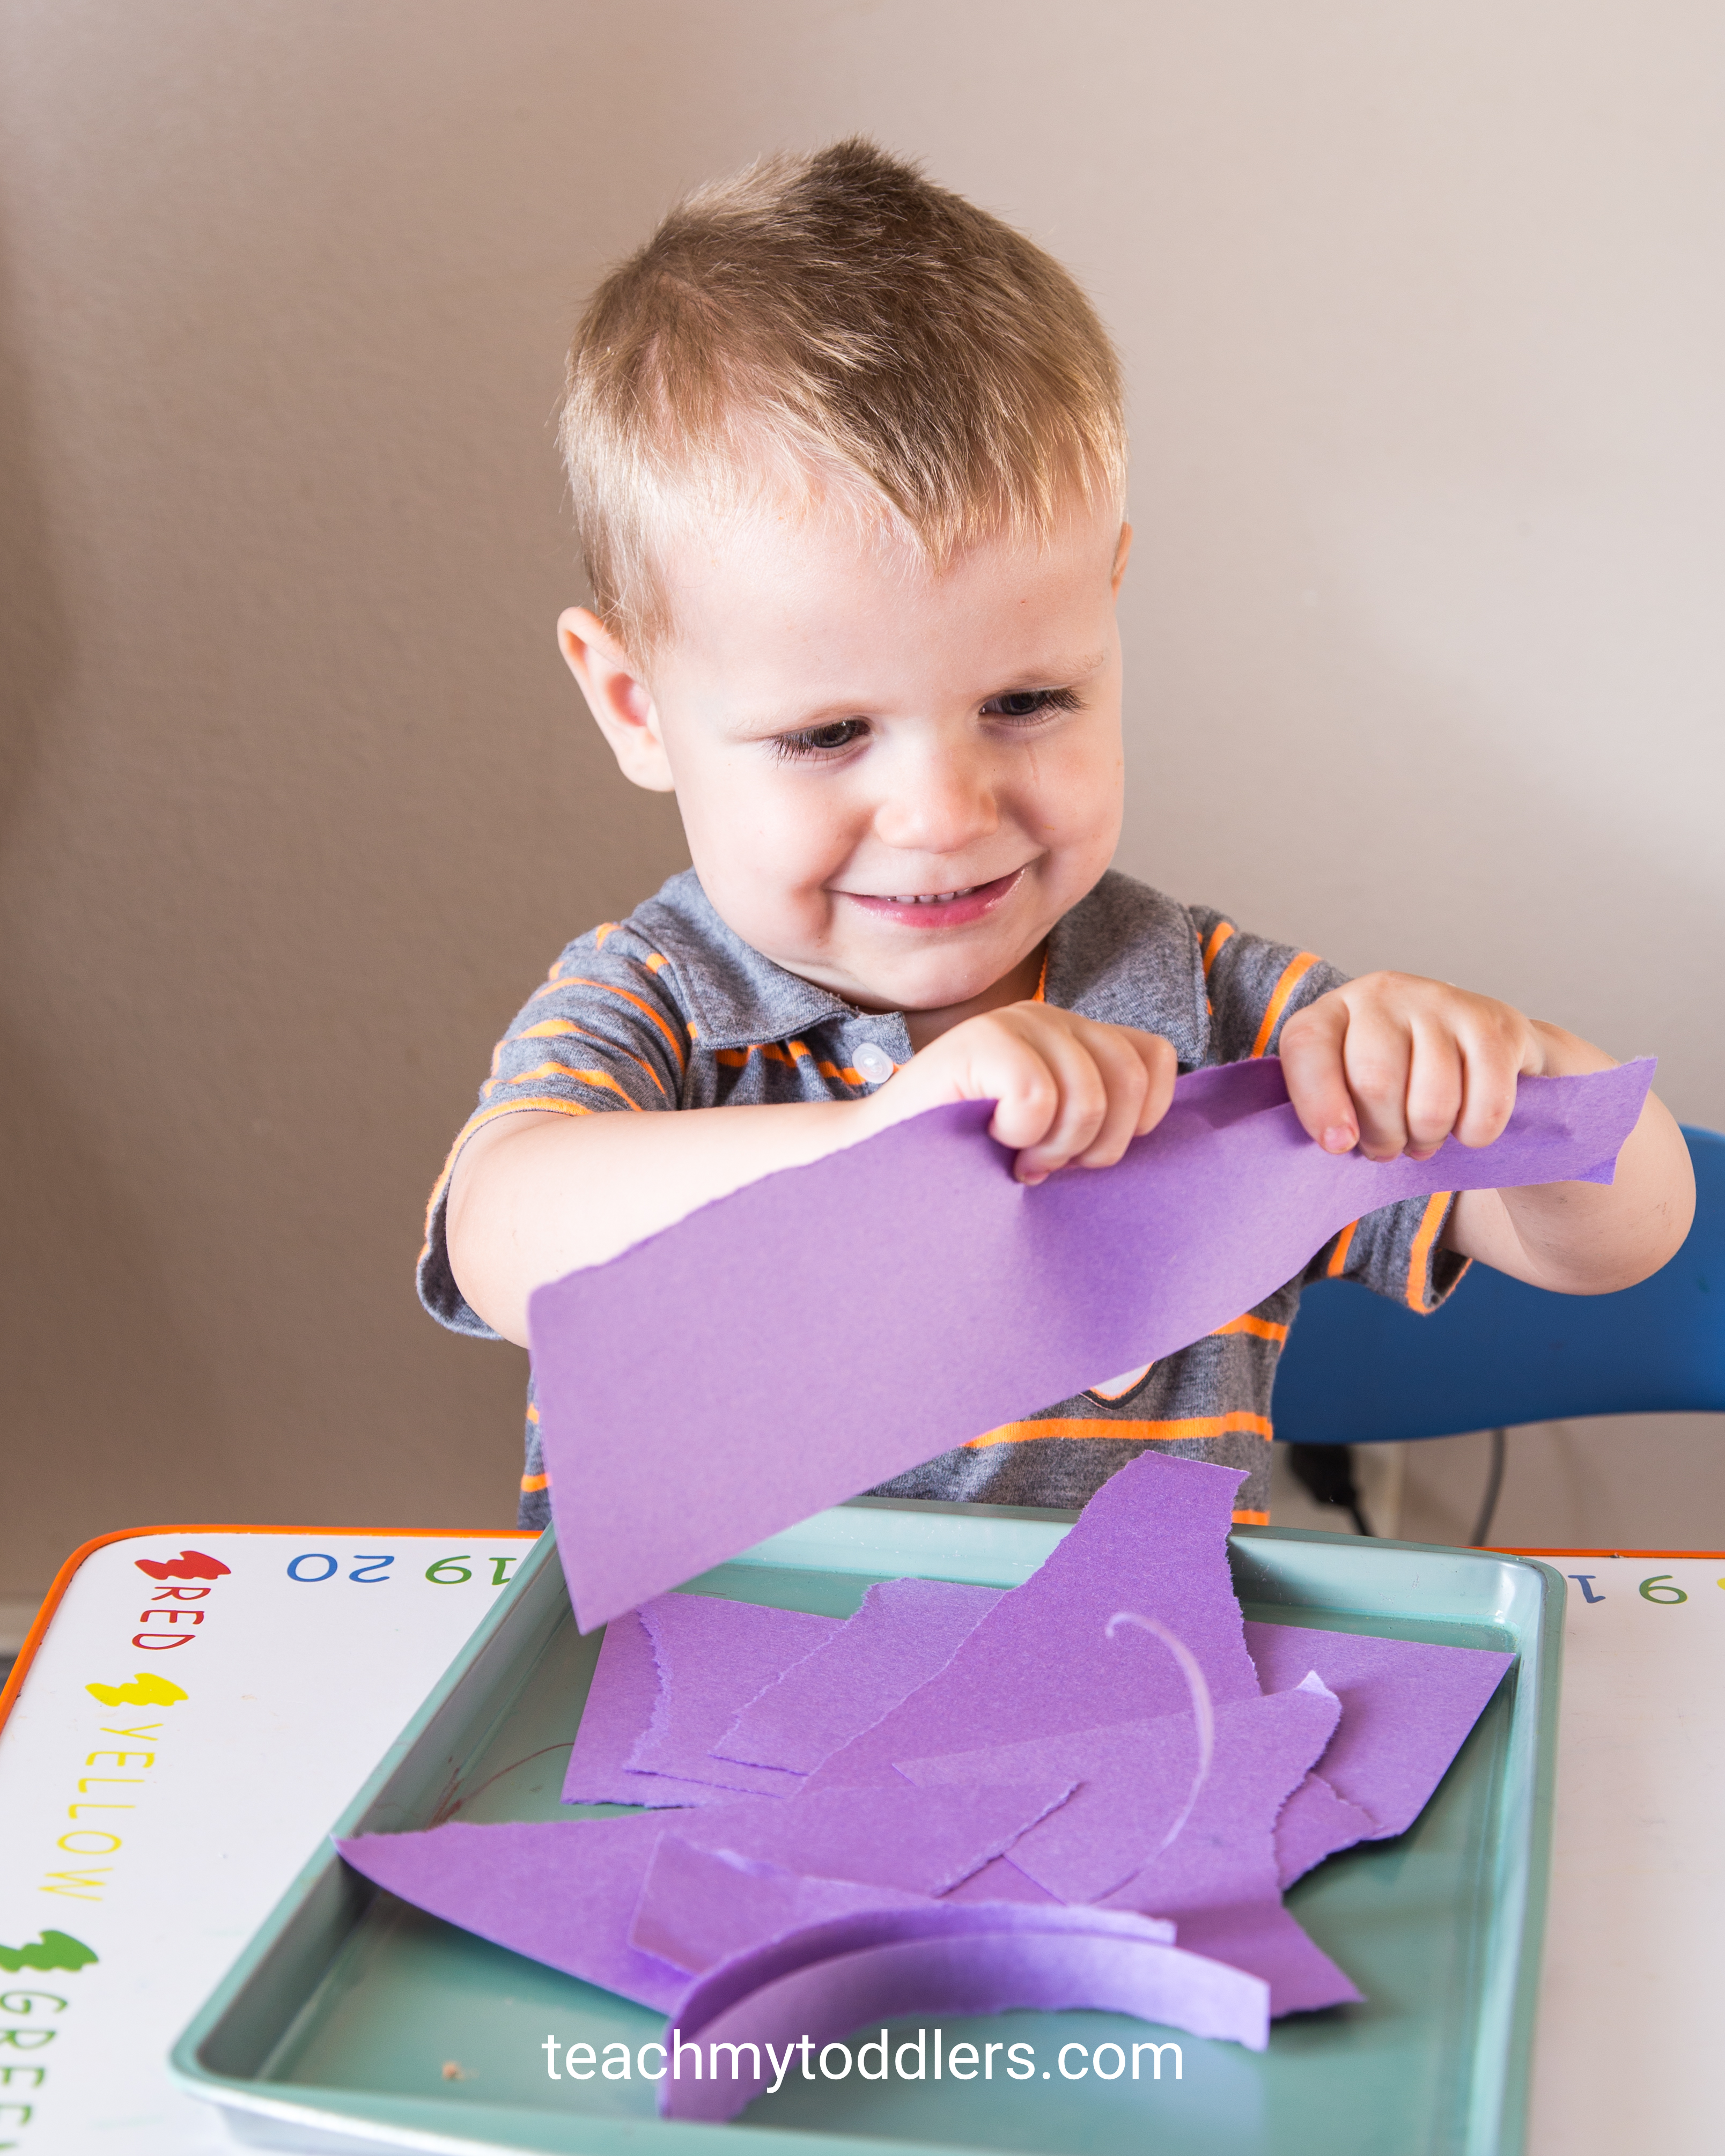 These tot trays are a good way to teach toddlers the color green